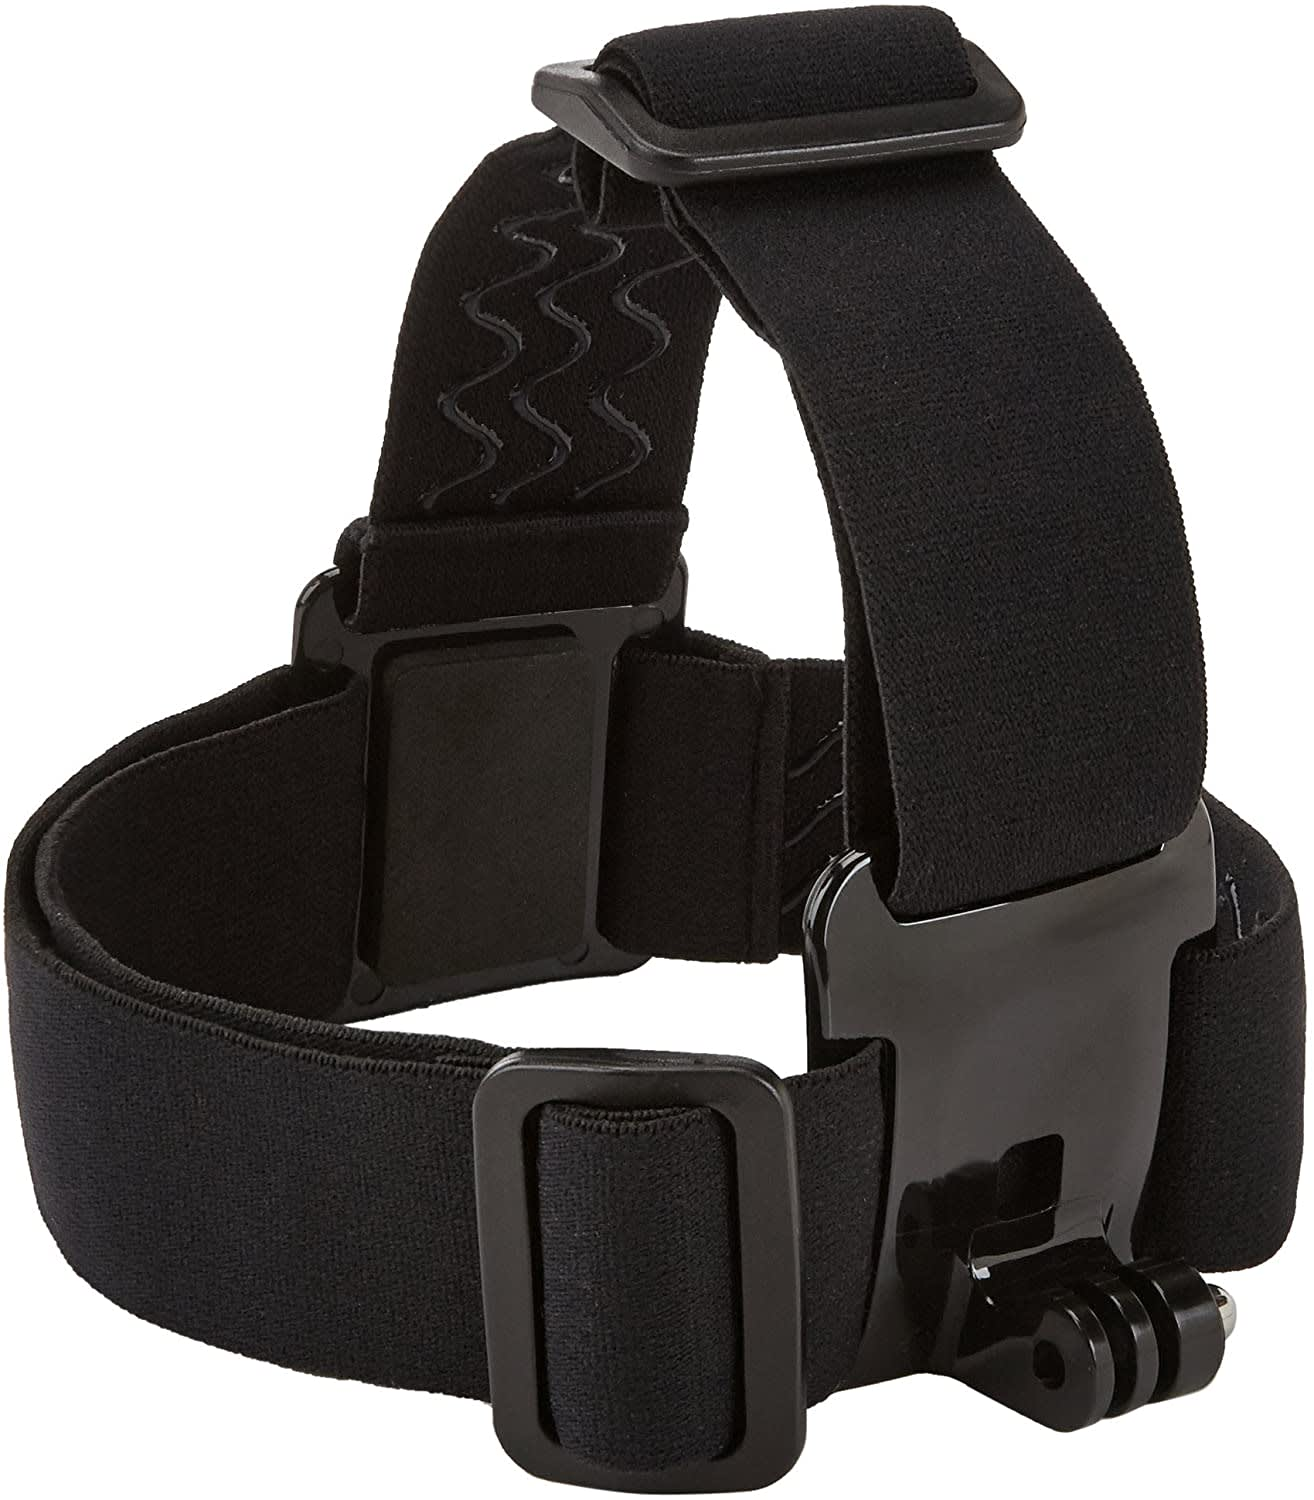 GoPro Head Strap Review